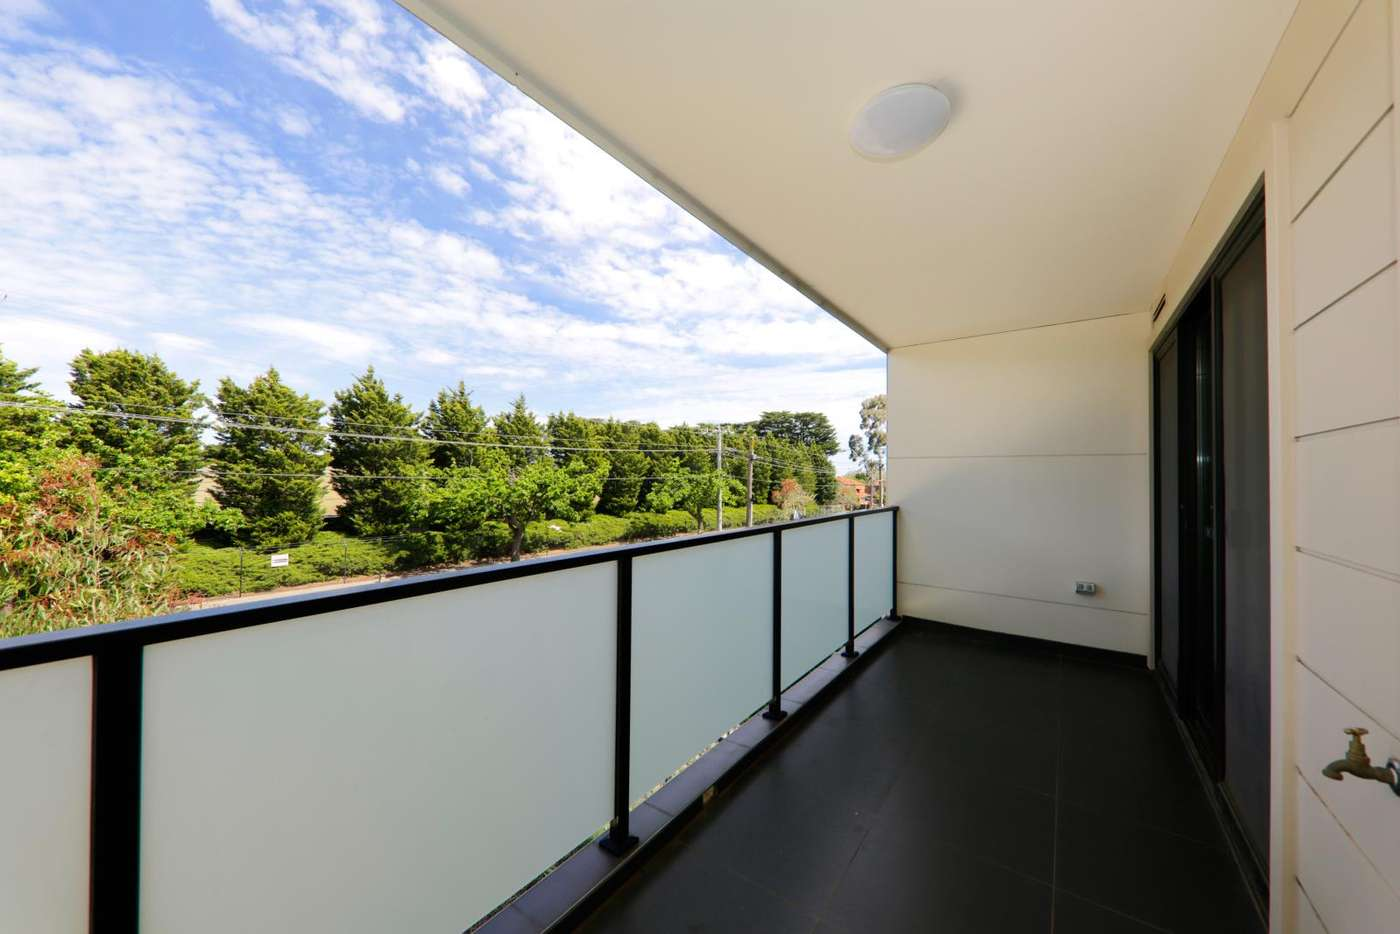 Sixth view of Homely unit listing, 109/519-521 High Street Road, Mount Waverley VIC 3149